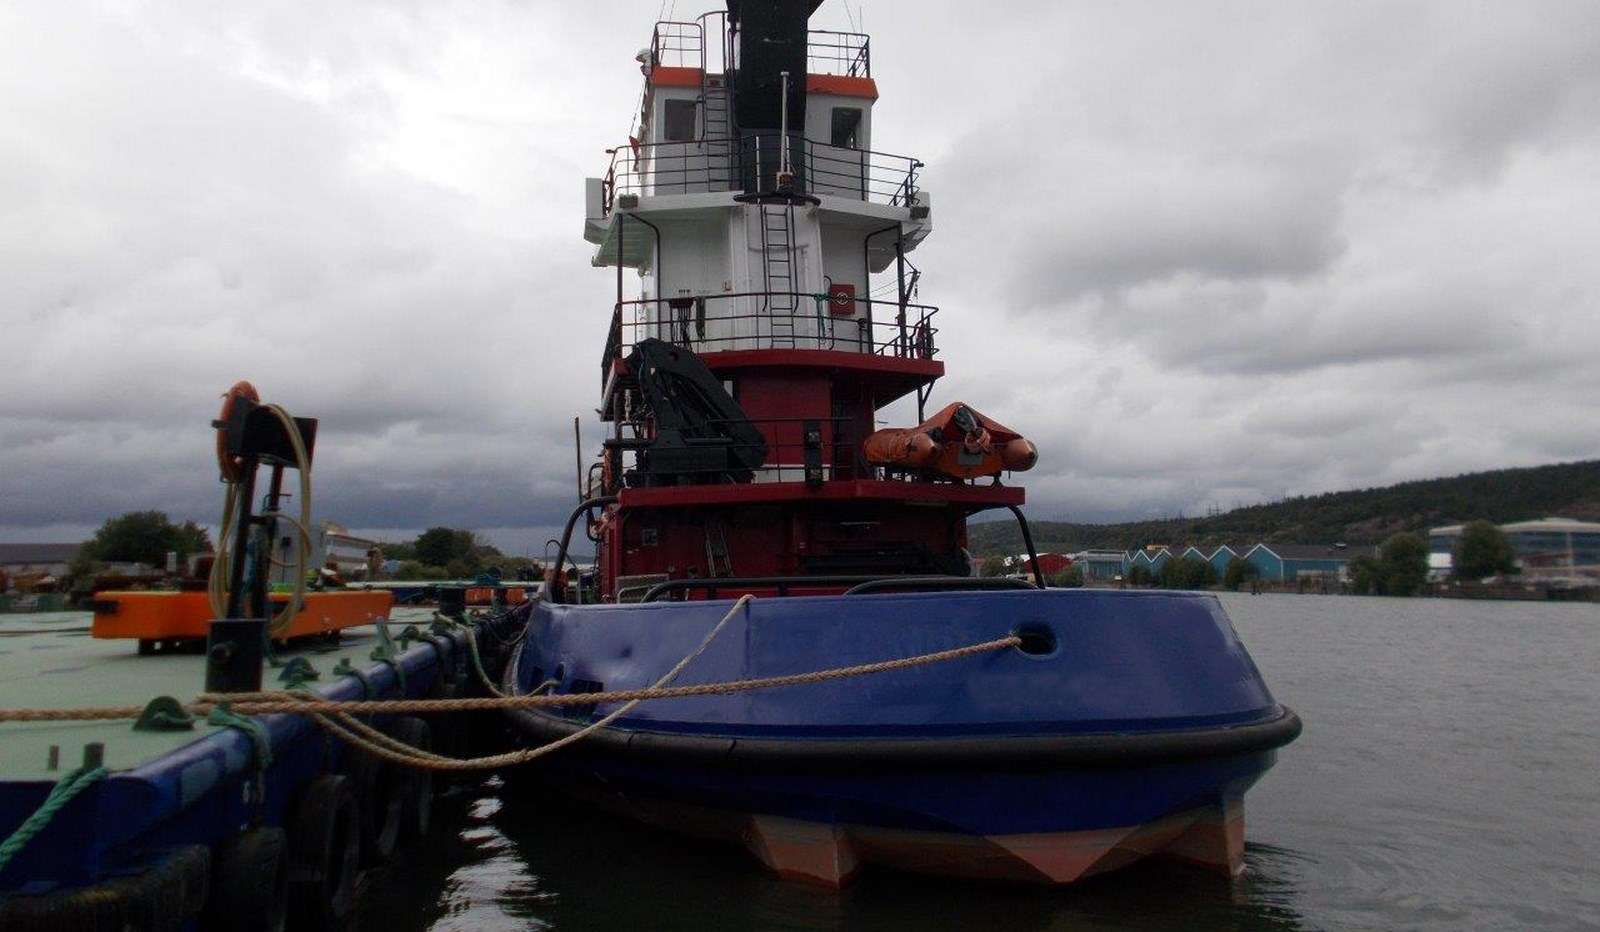 Tug and Barge combination aft view